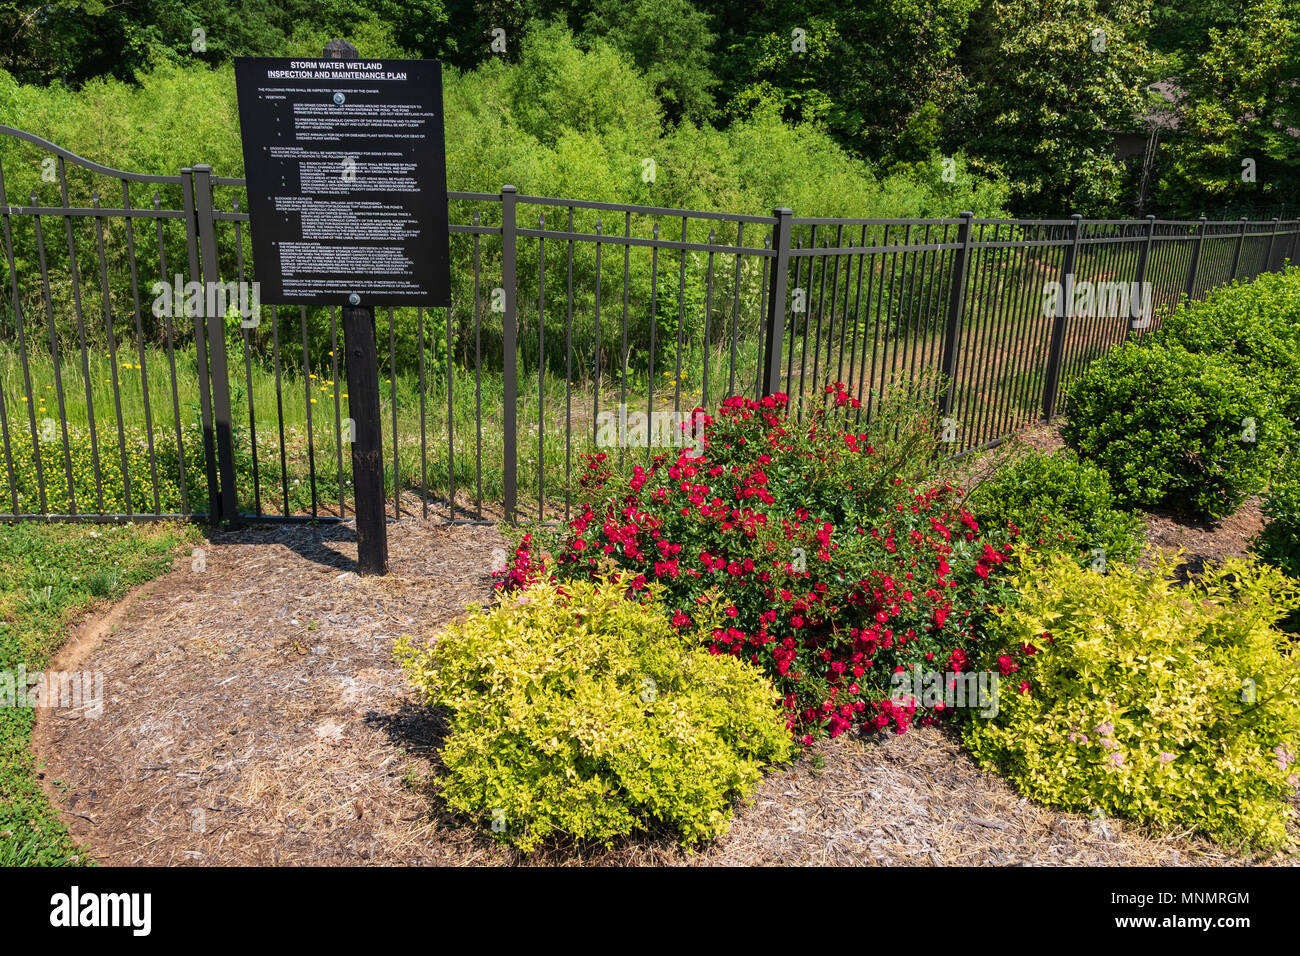 A rain garden of cane, fenced in with Azaleas and other attractive shrubbery surrounding it. - Stock Image